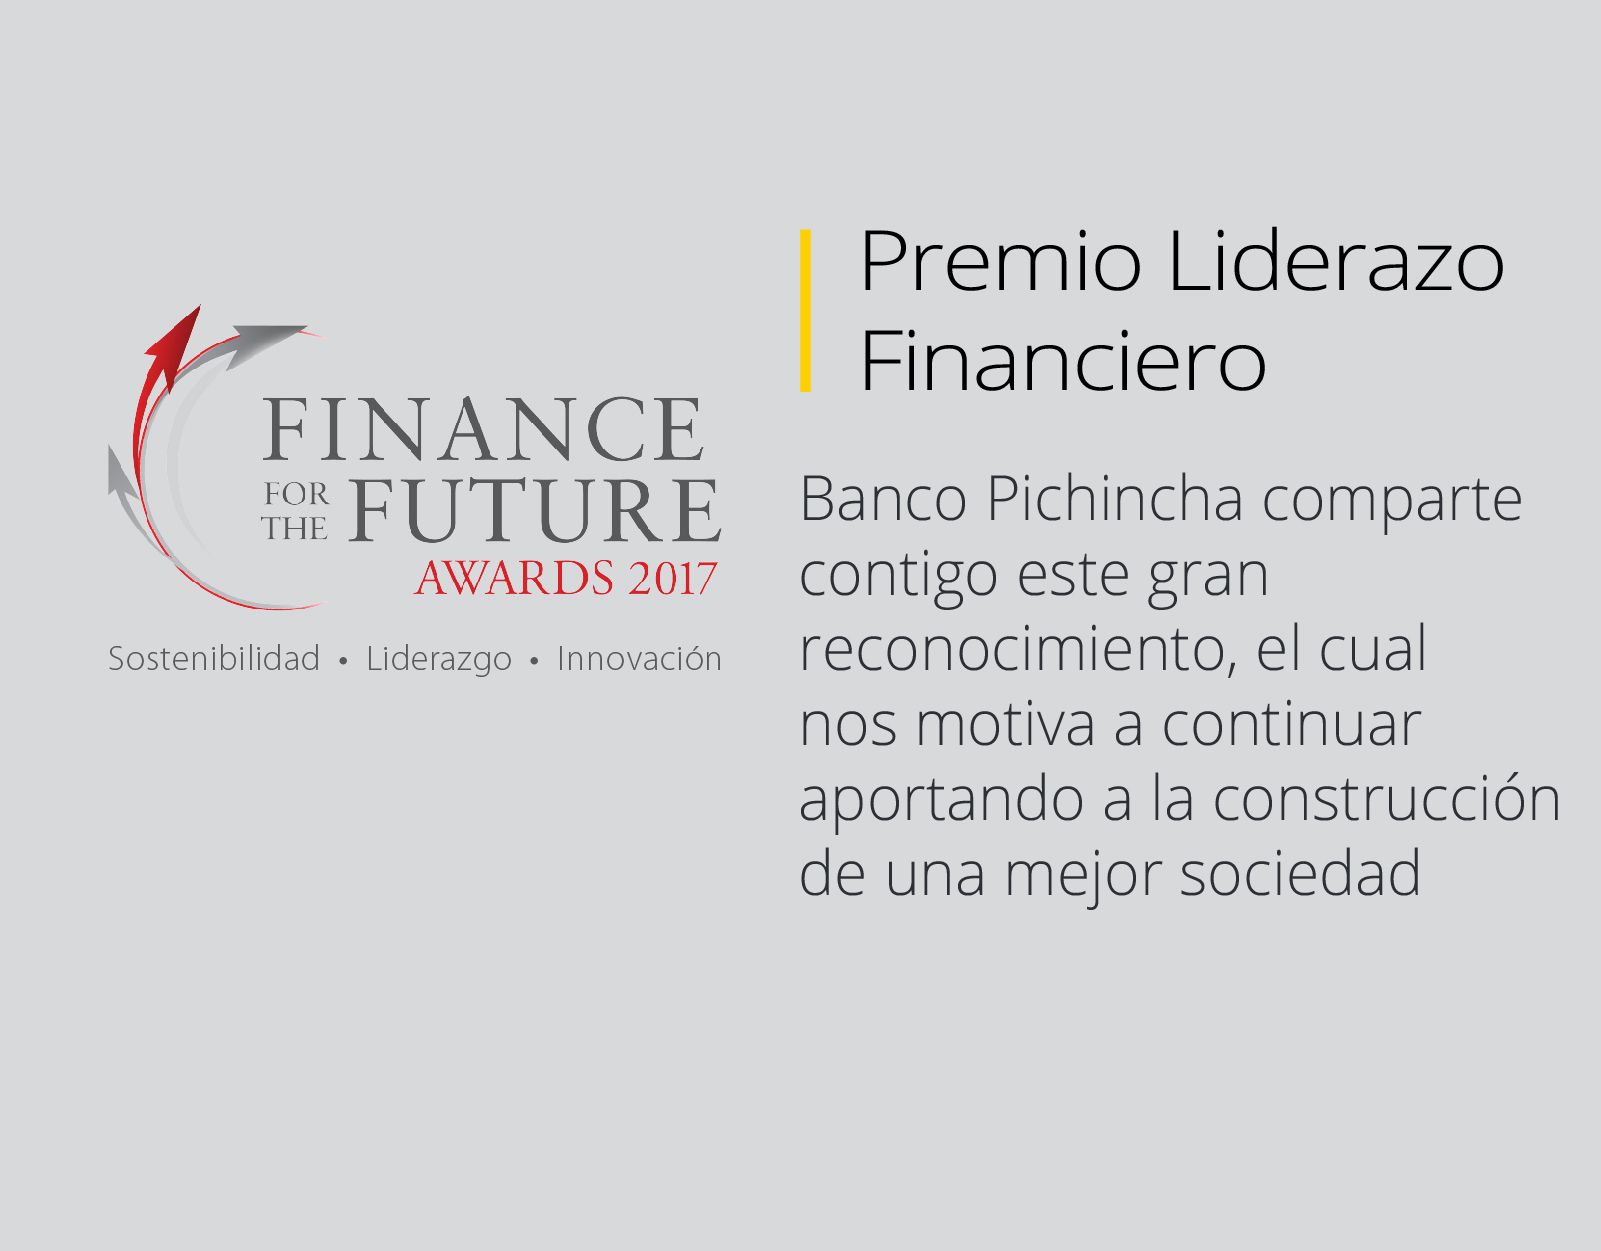 Premio Finance the for Future Awards 2017